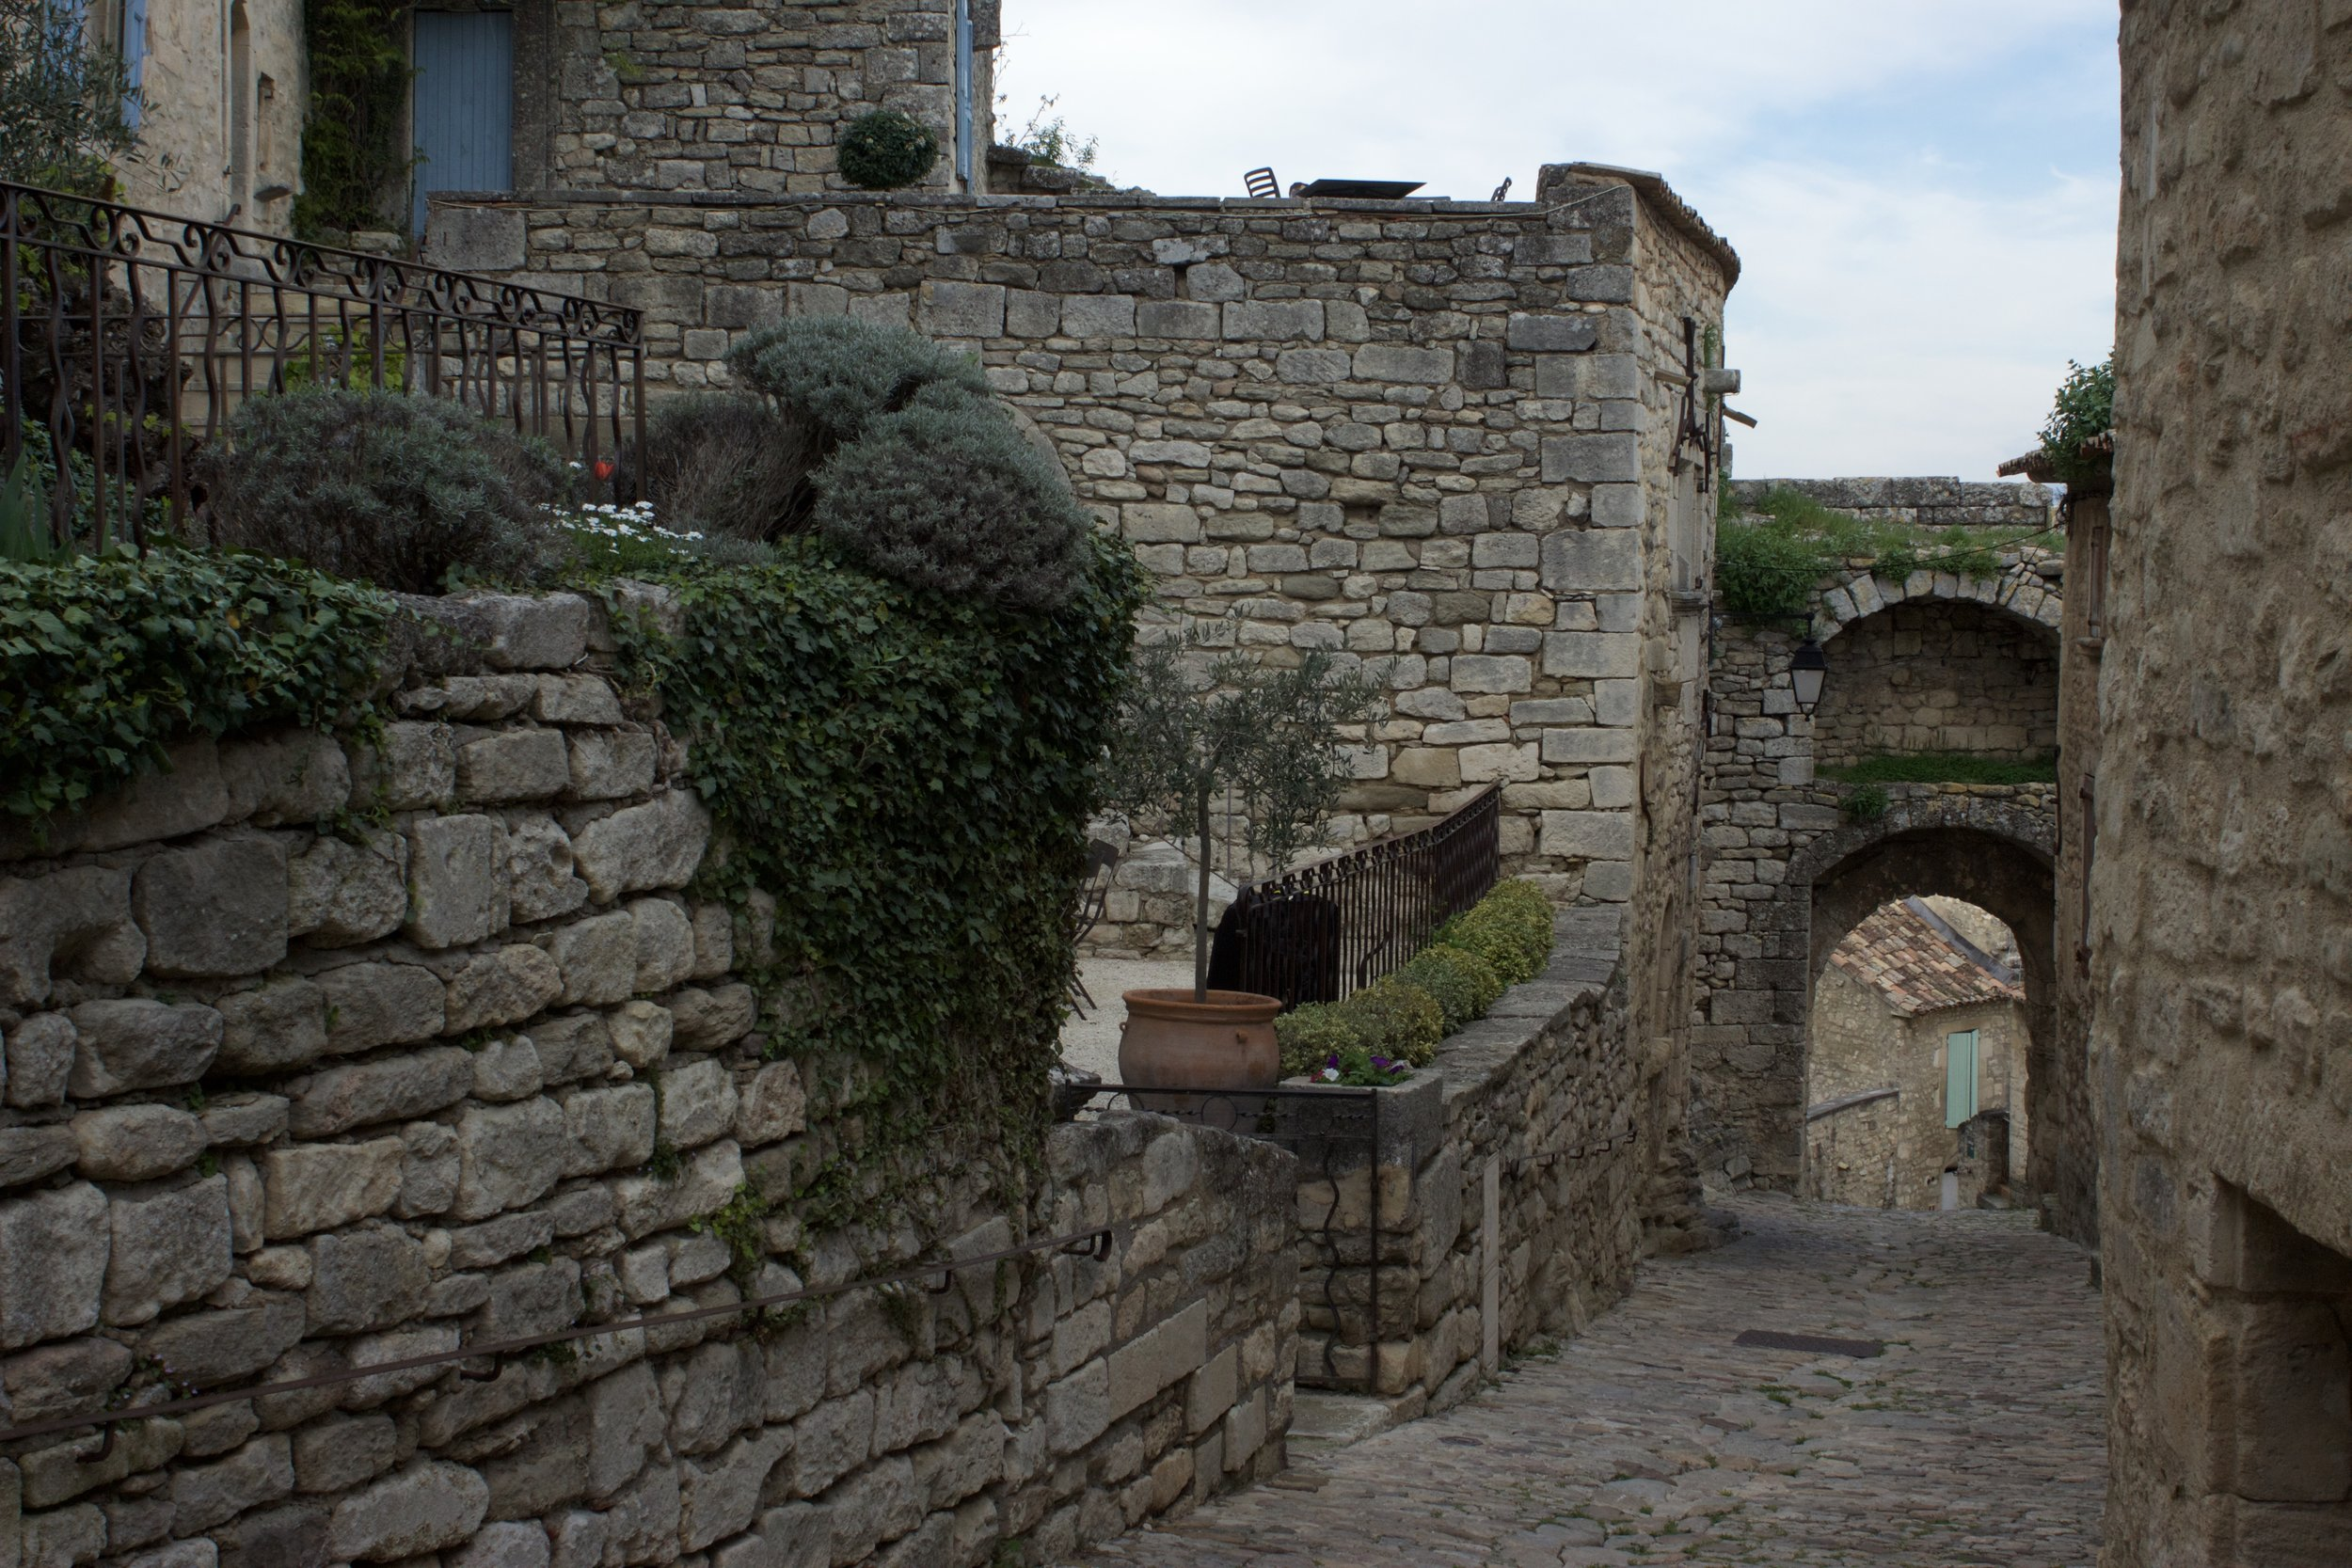 The road to my apartment in Lacoste, France!